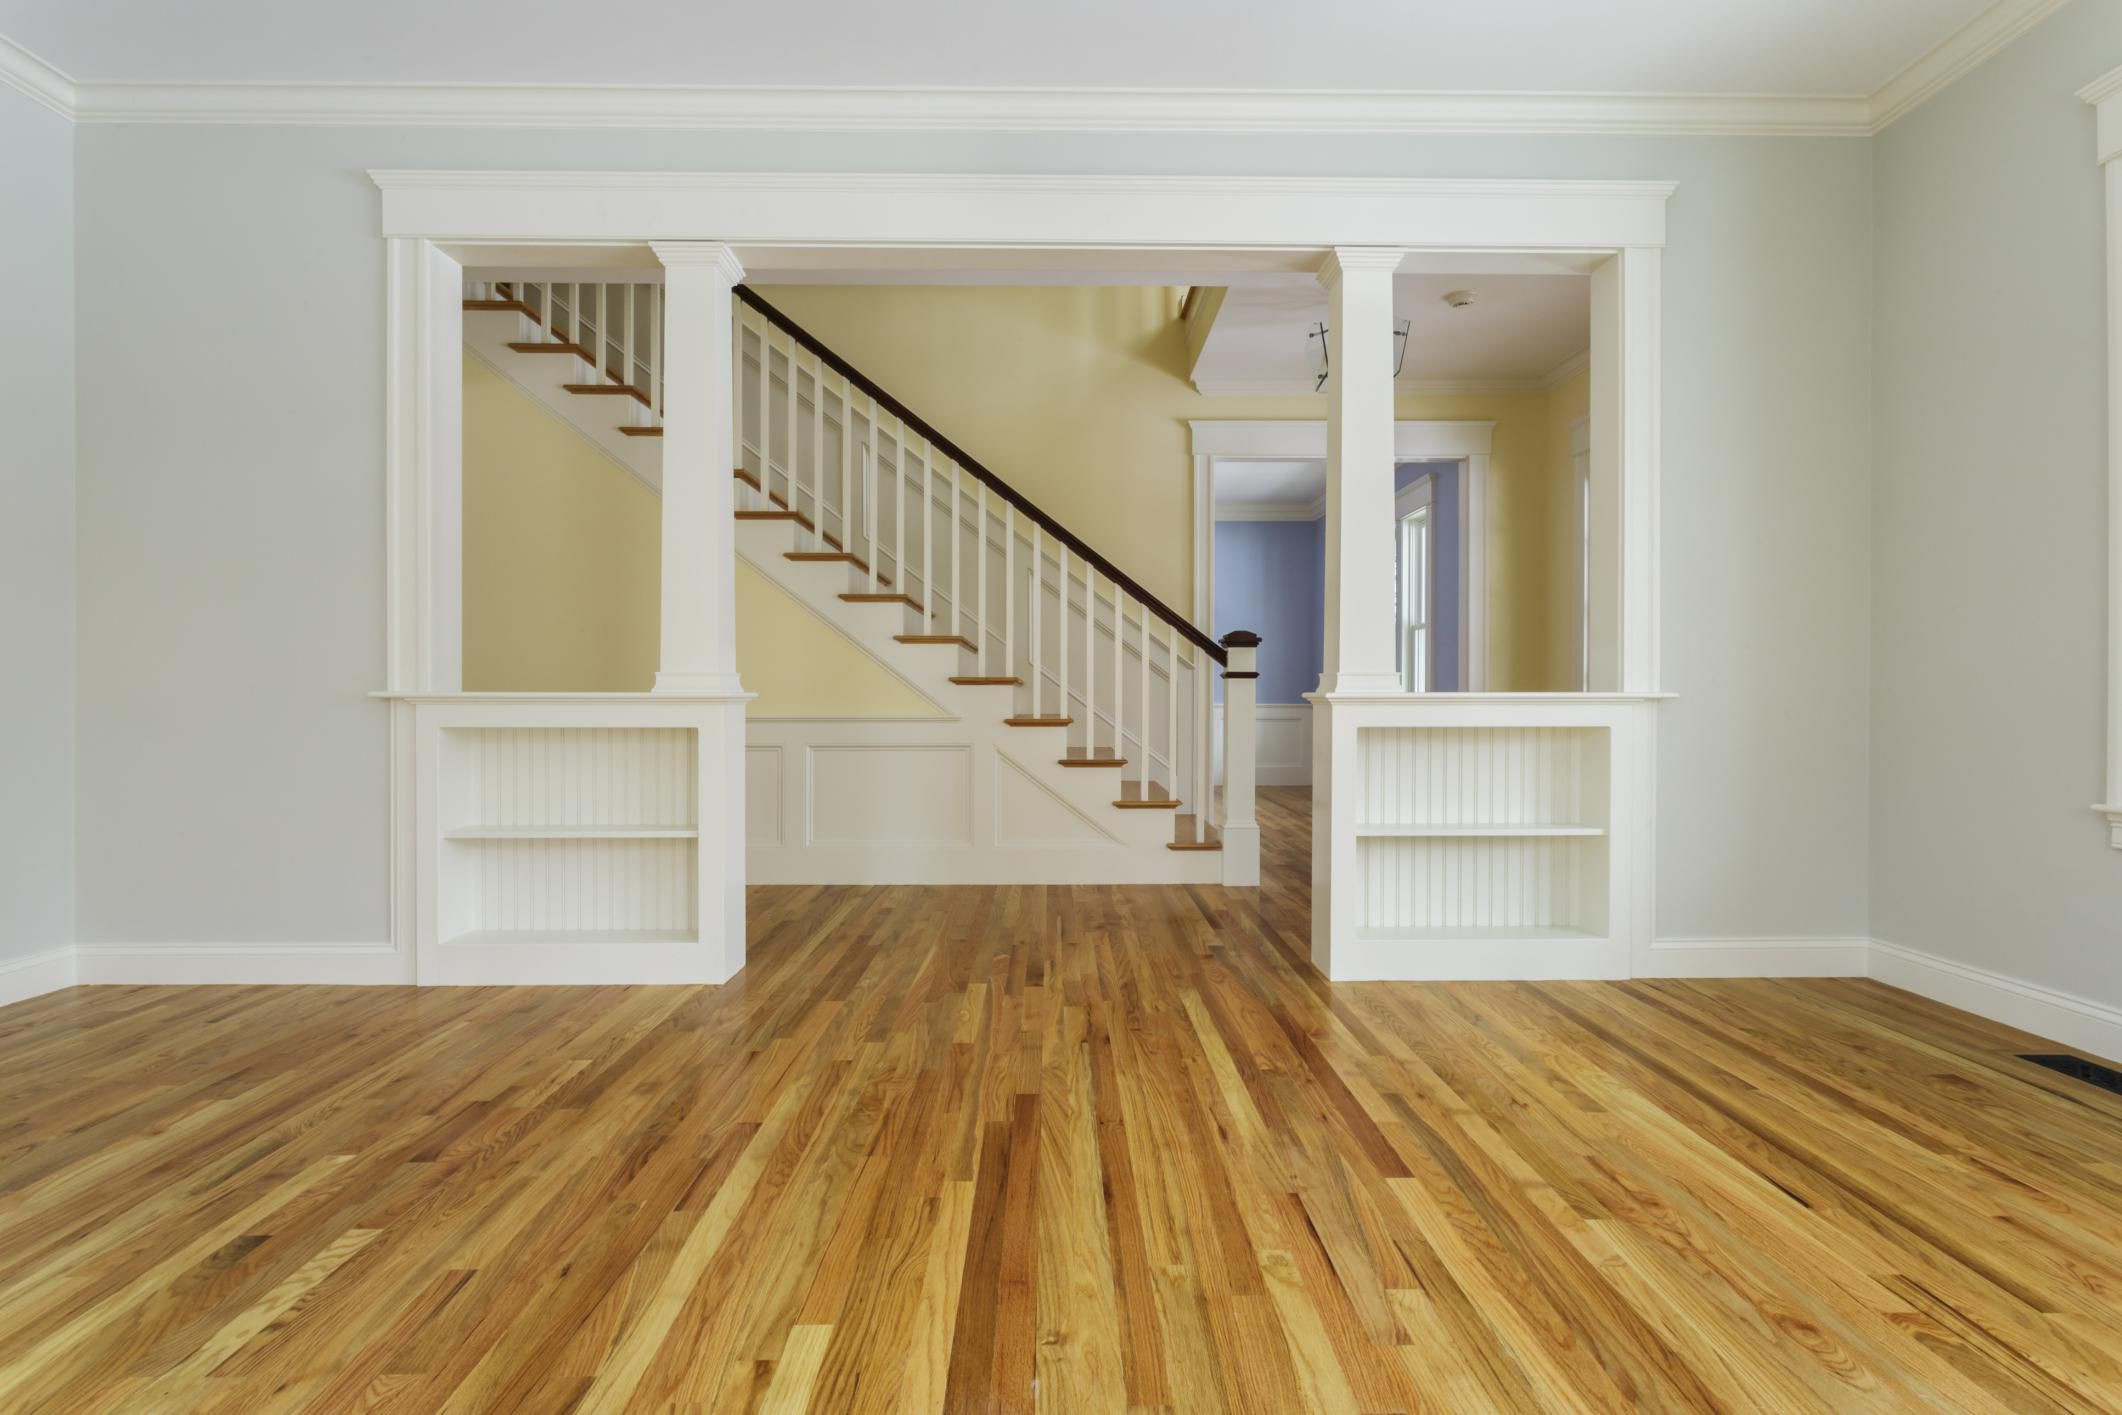 1 1 2 inch red oak hardwood flooring of guide to solid hardwood floors regarding 168686571 56a49f213df78cf772834e24